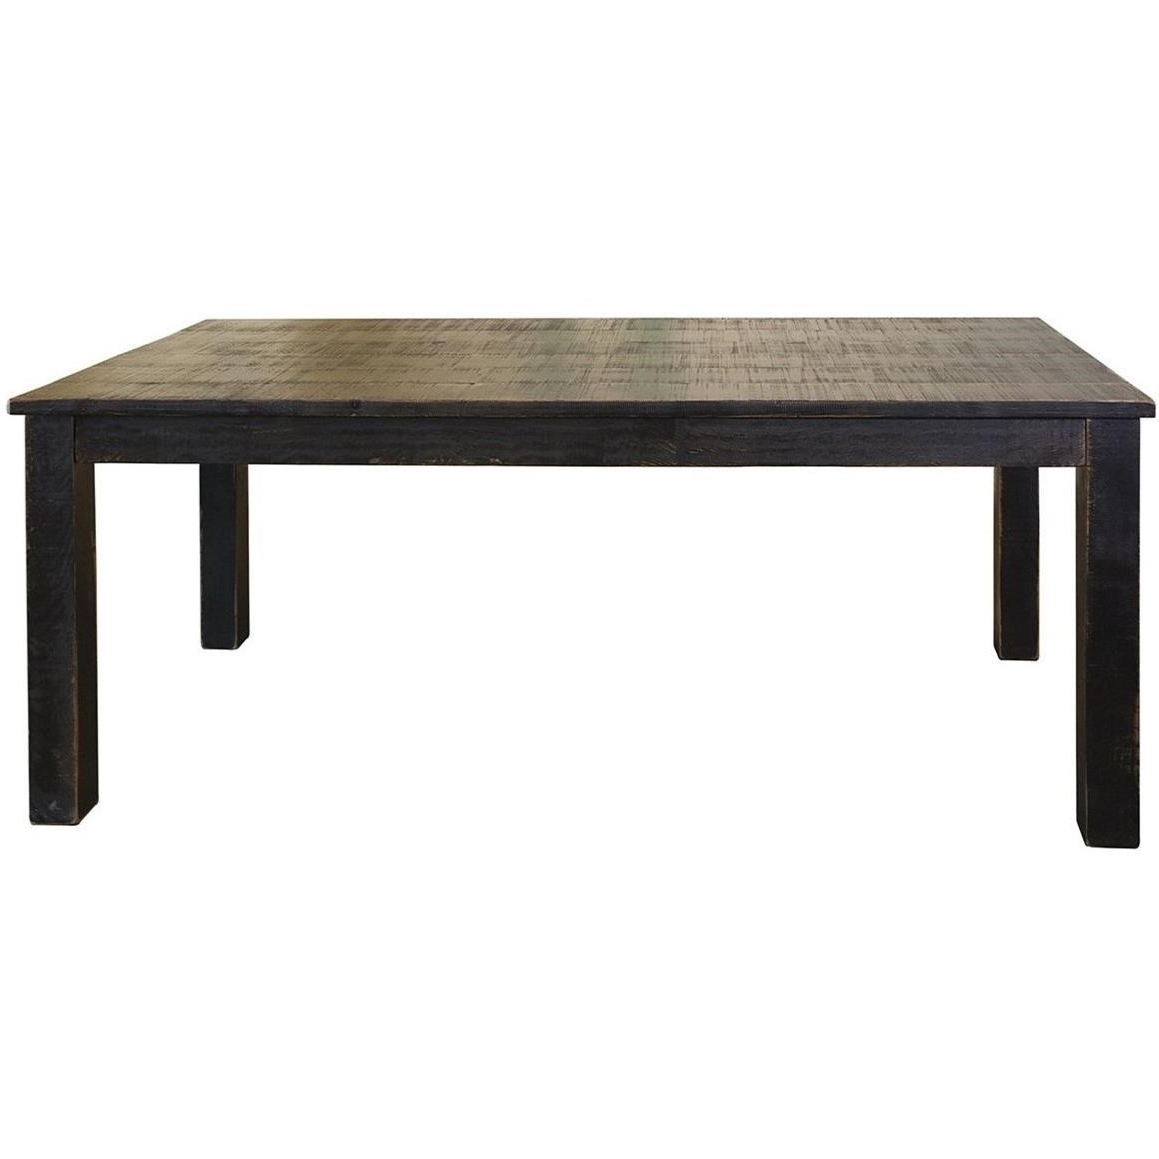 Famous Pueblo Rustic Wood Dining Tableinternational Furniture Direct At Dunk &  Bright Furniture With Wood Dining Tables (View 5 of 25)